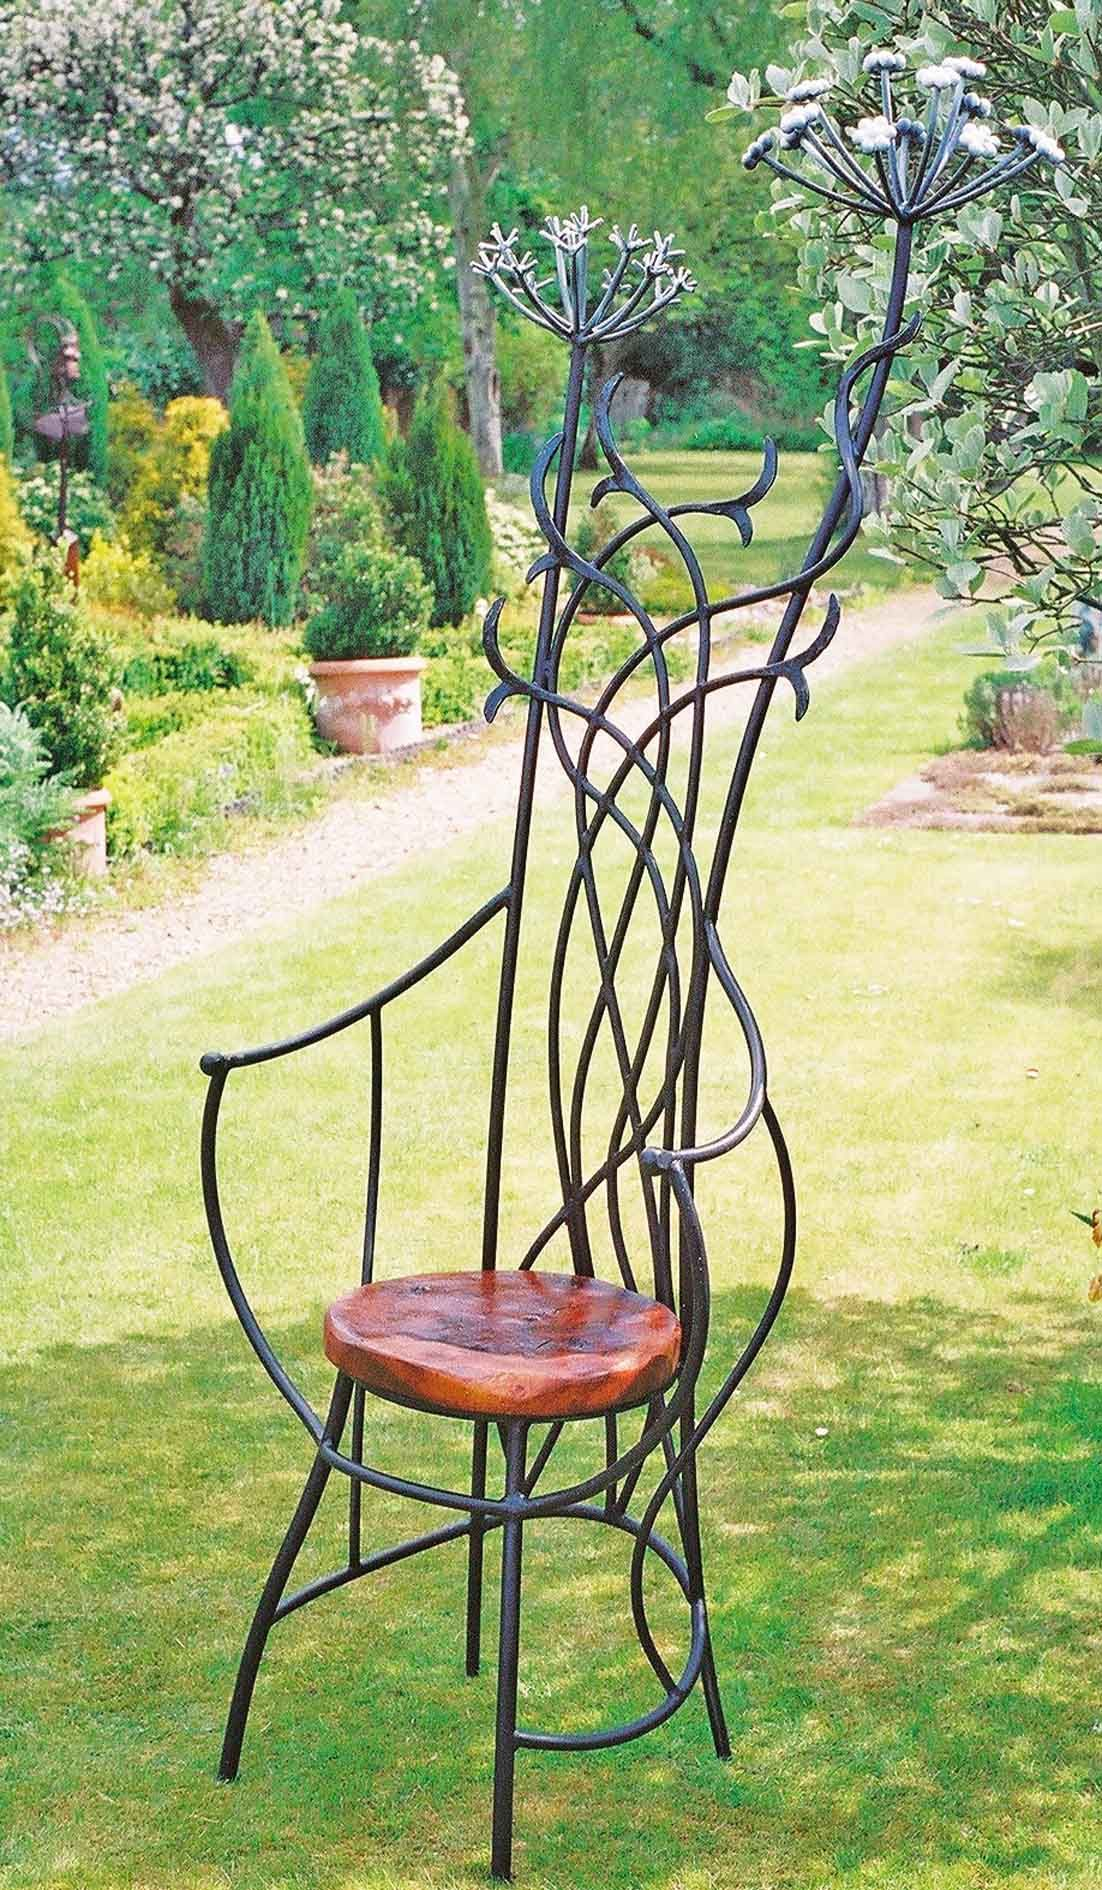 must have original furniture designs in forged wrought iron bright